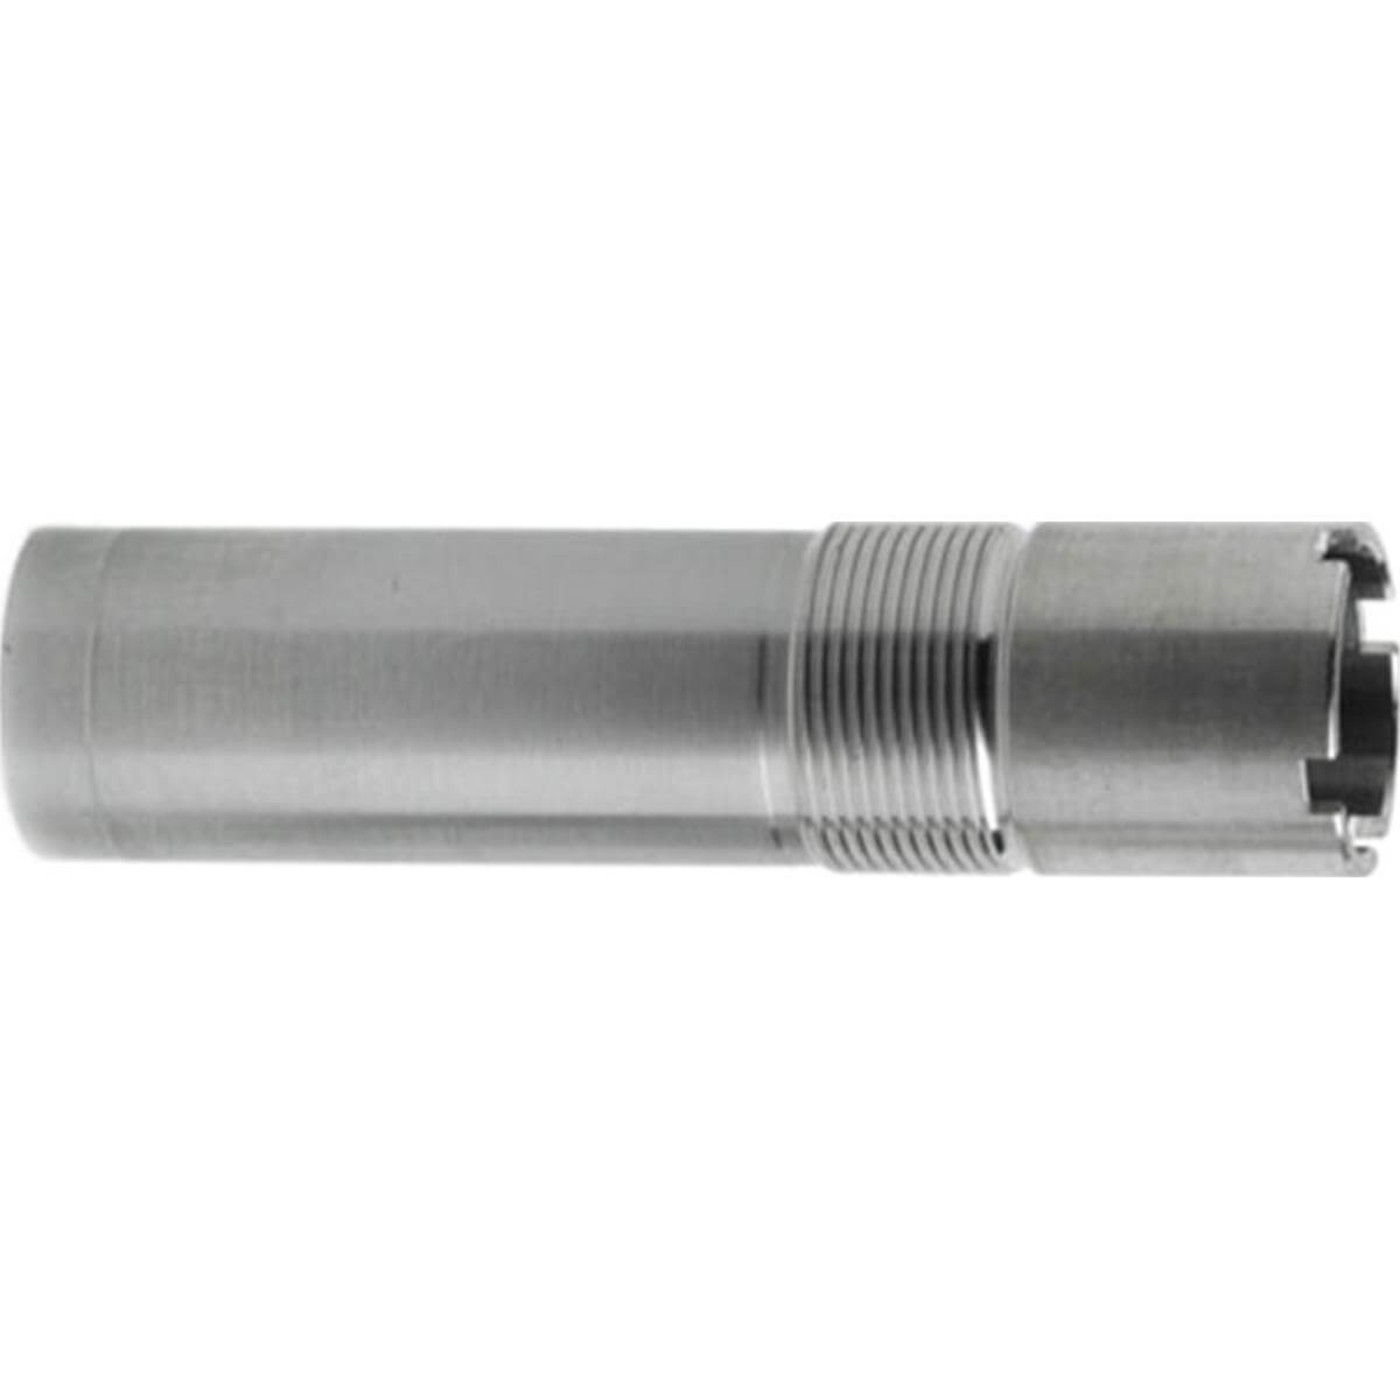 Benelli Crio M2 20 Gauge Modified Flush Choke Tube